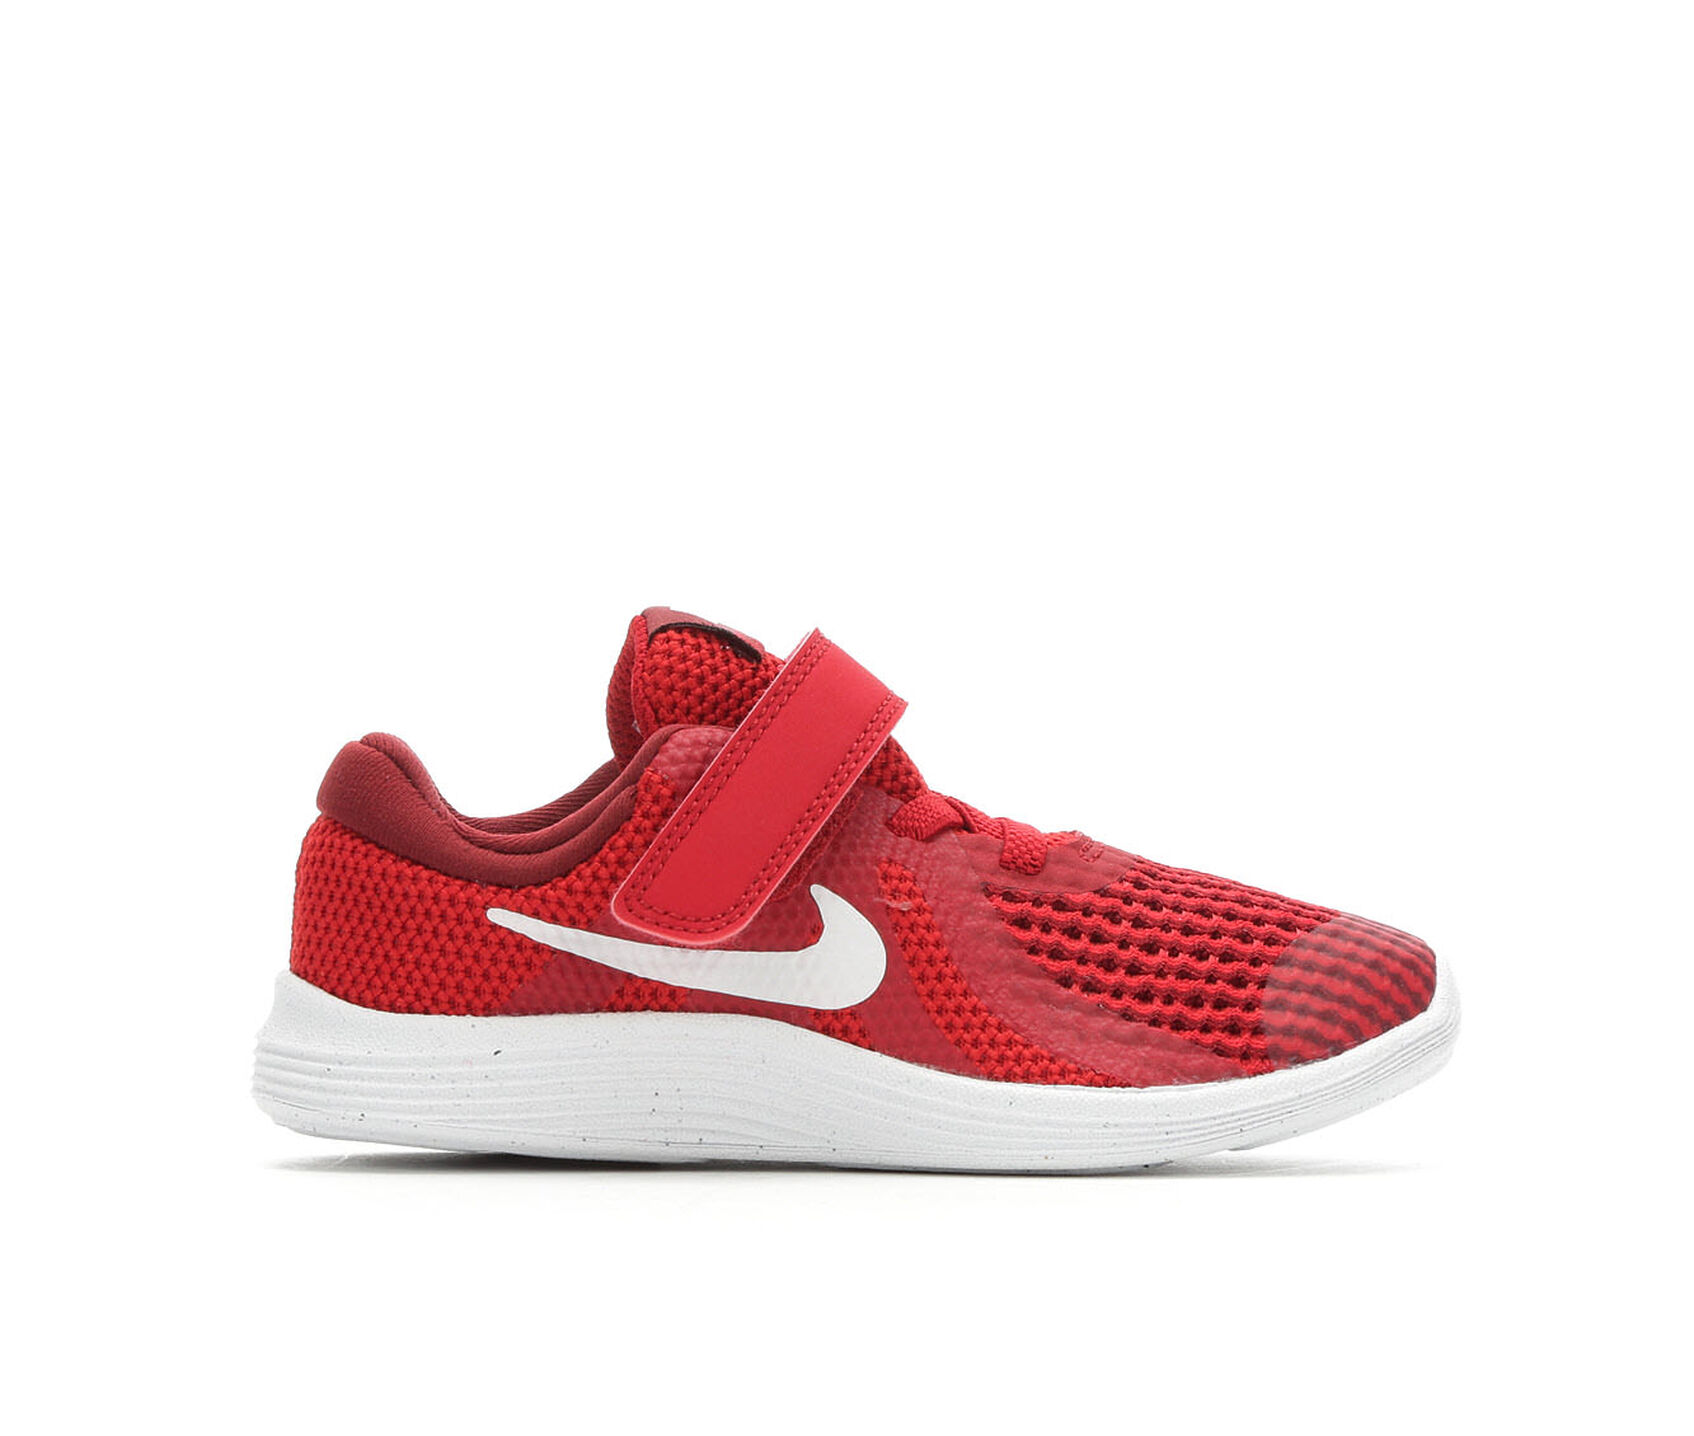 Boys  Nike Infant   Toddler Revolution 4 Running Shoes  003d7c340